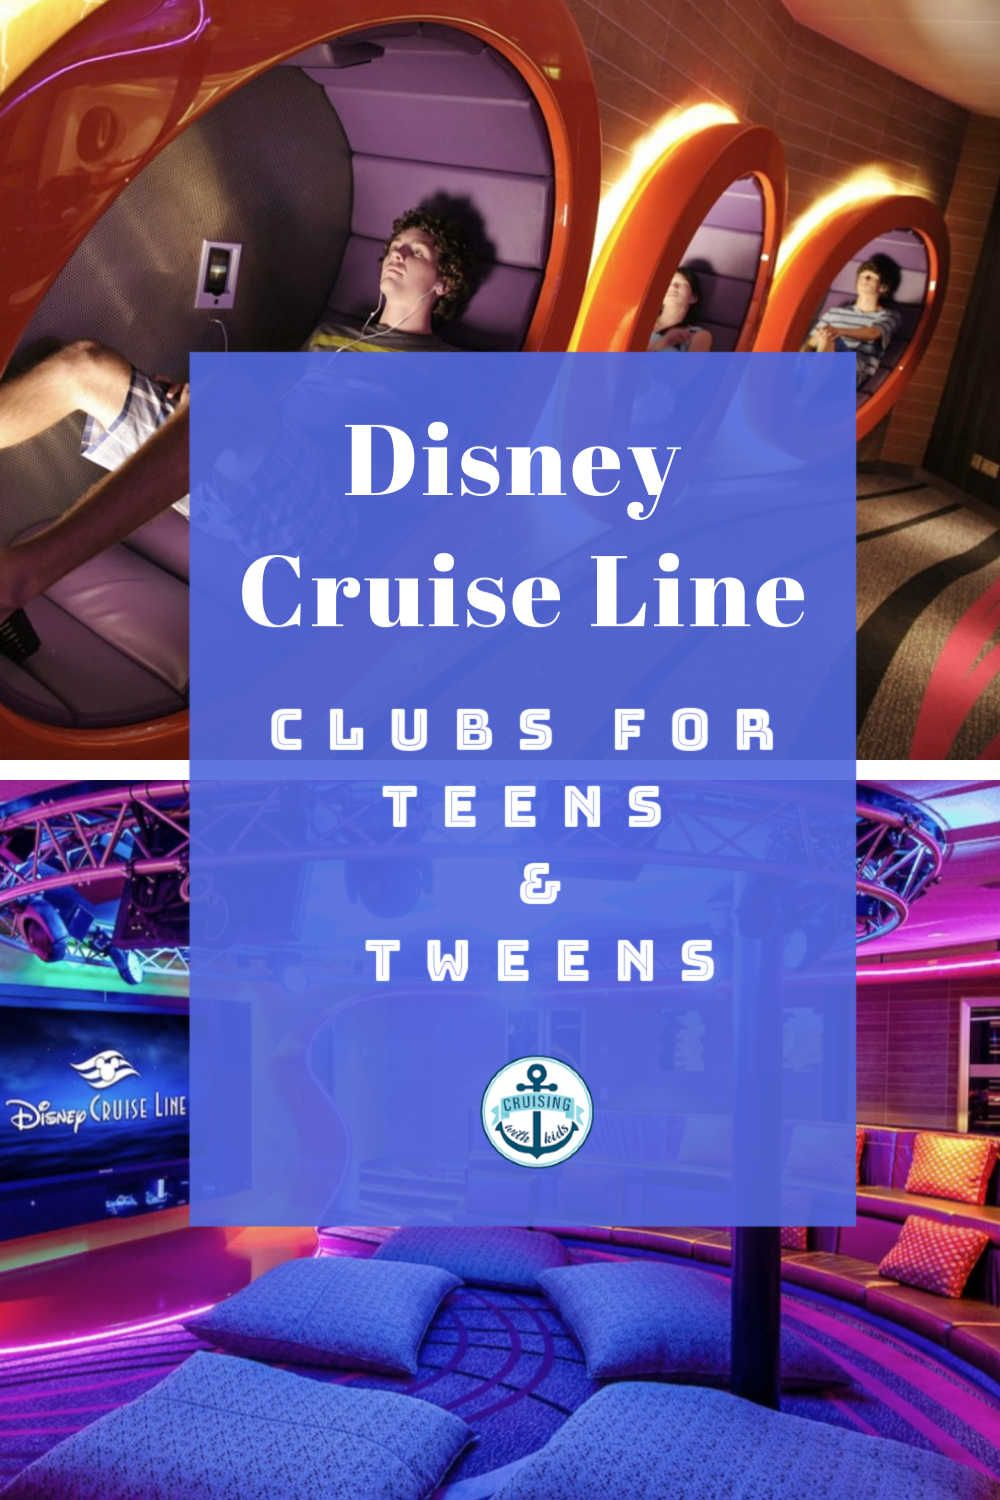 Disney cruise line clubs for teens and tweens what do